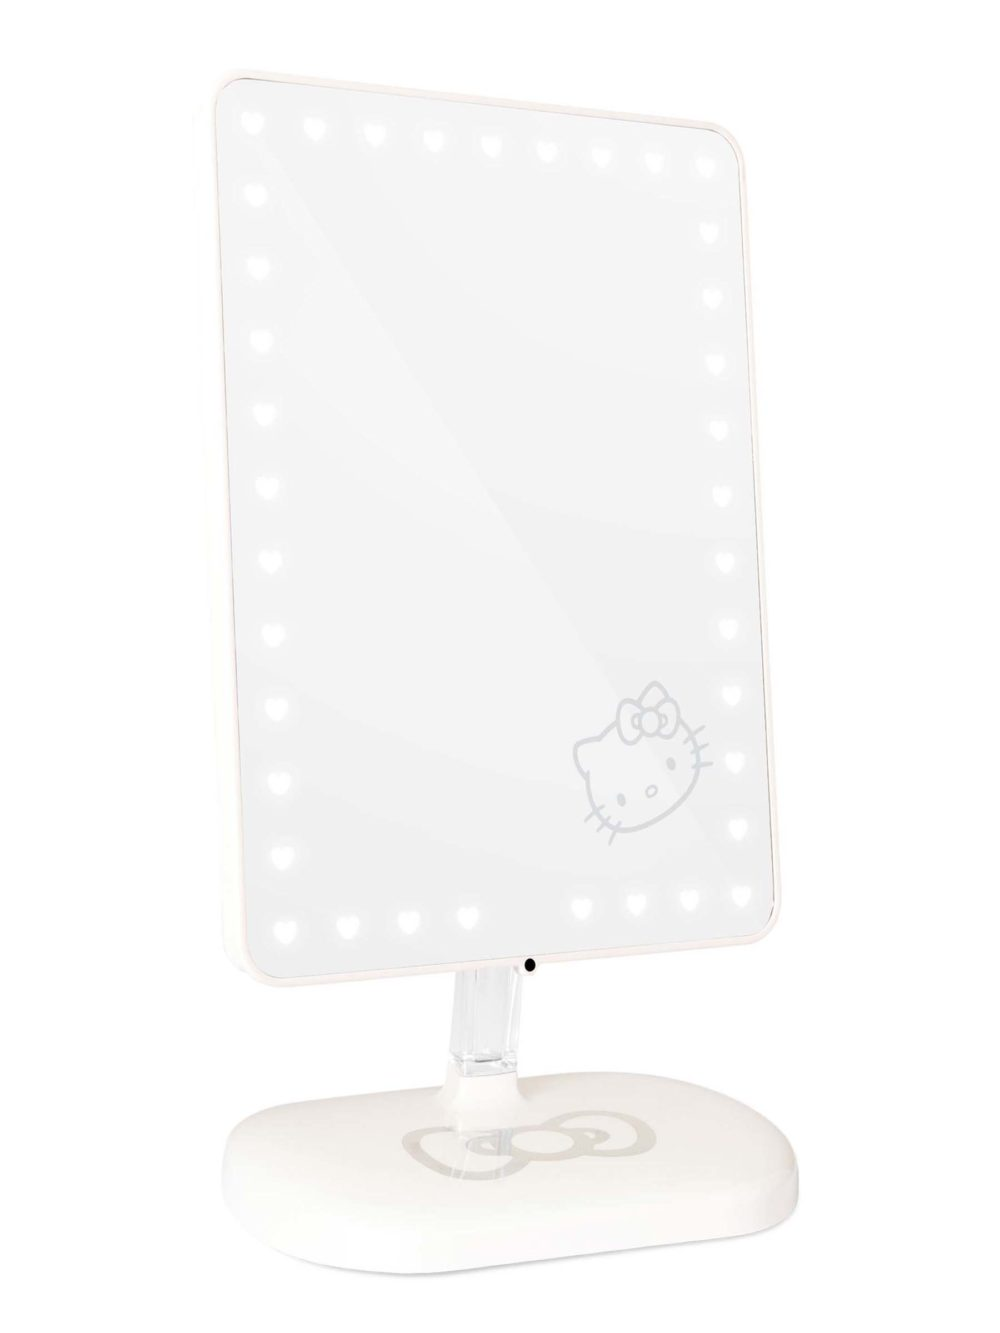 Hello Kitty teamed up with this iconic makeup mirror brand, and we need it right meow